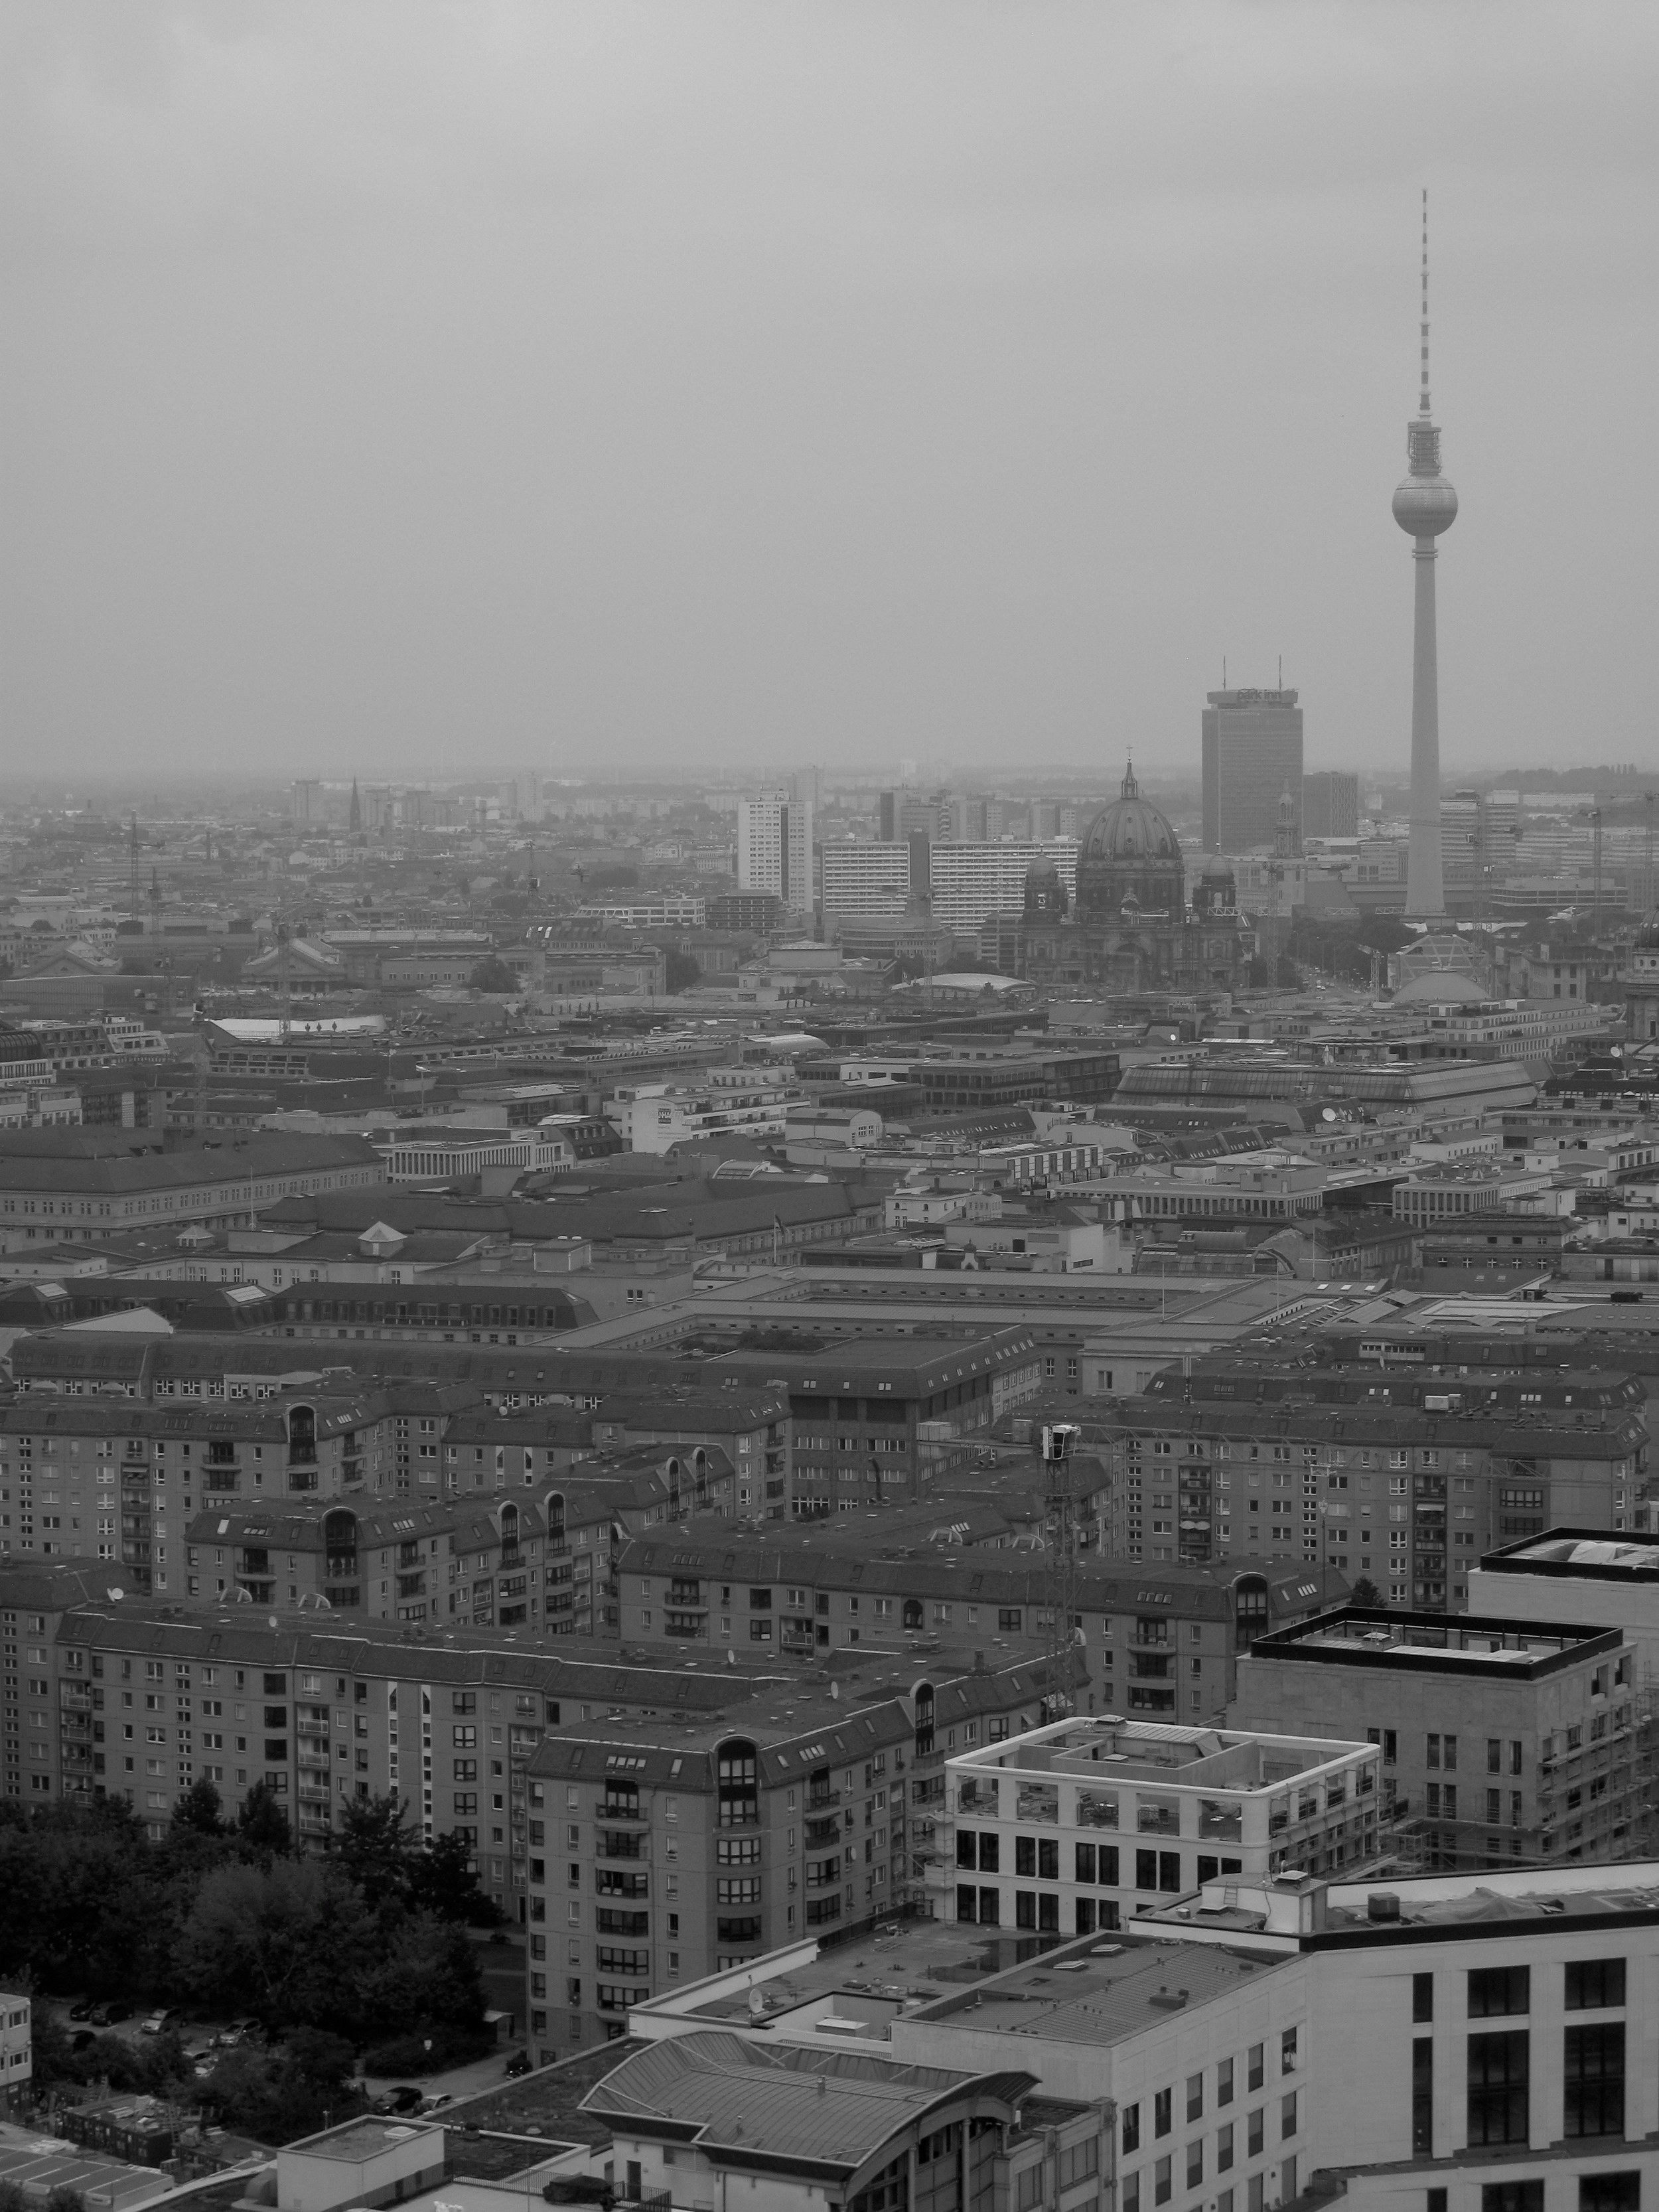 Fernsehturm and the Berlin skyline seen from above.